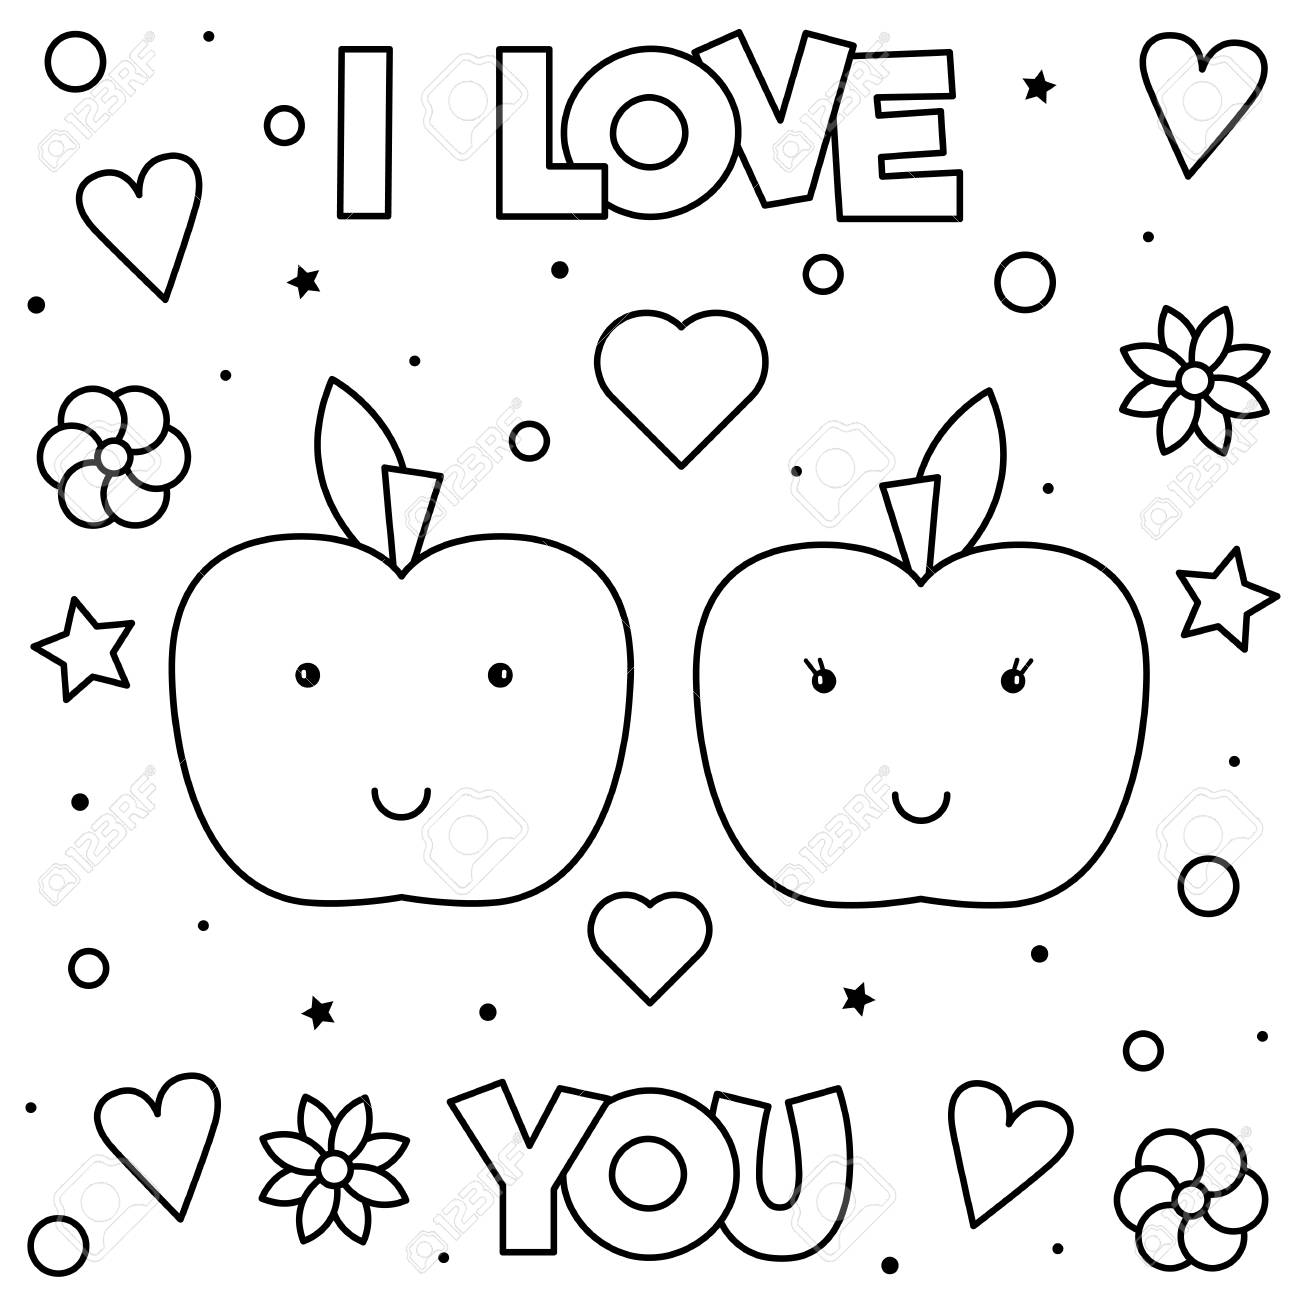 I Love You. Coloring page. Black and white vector illustration of apples. - 112857933